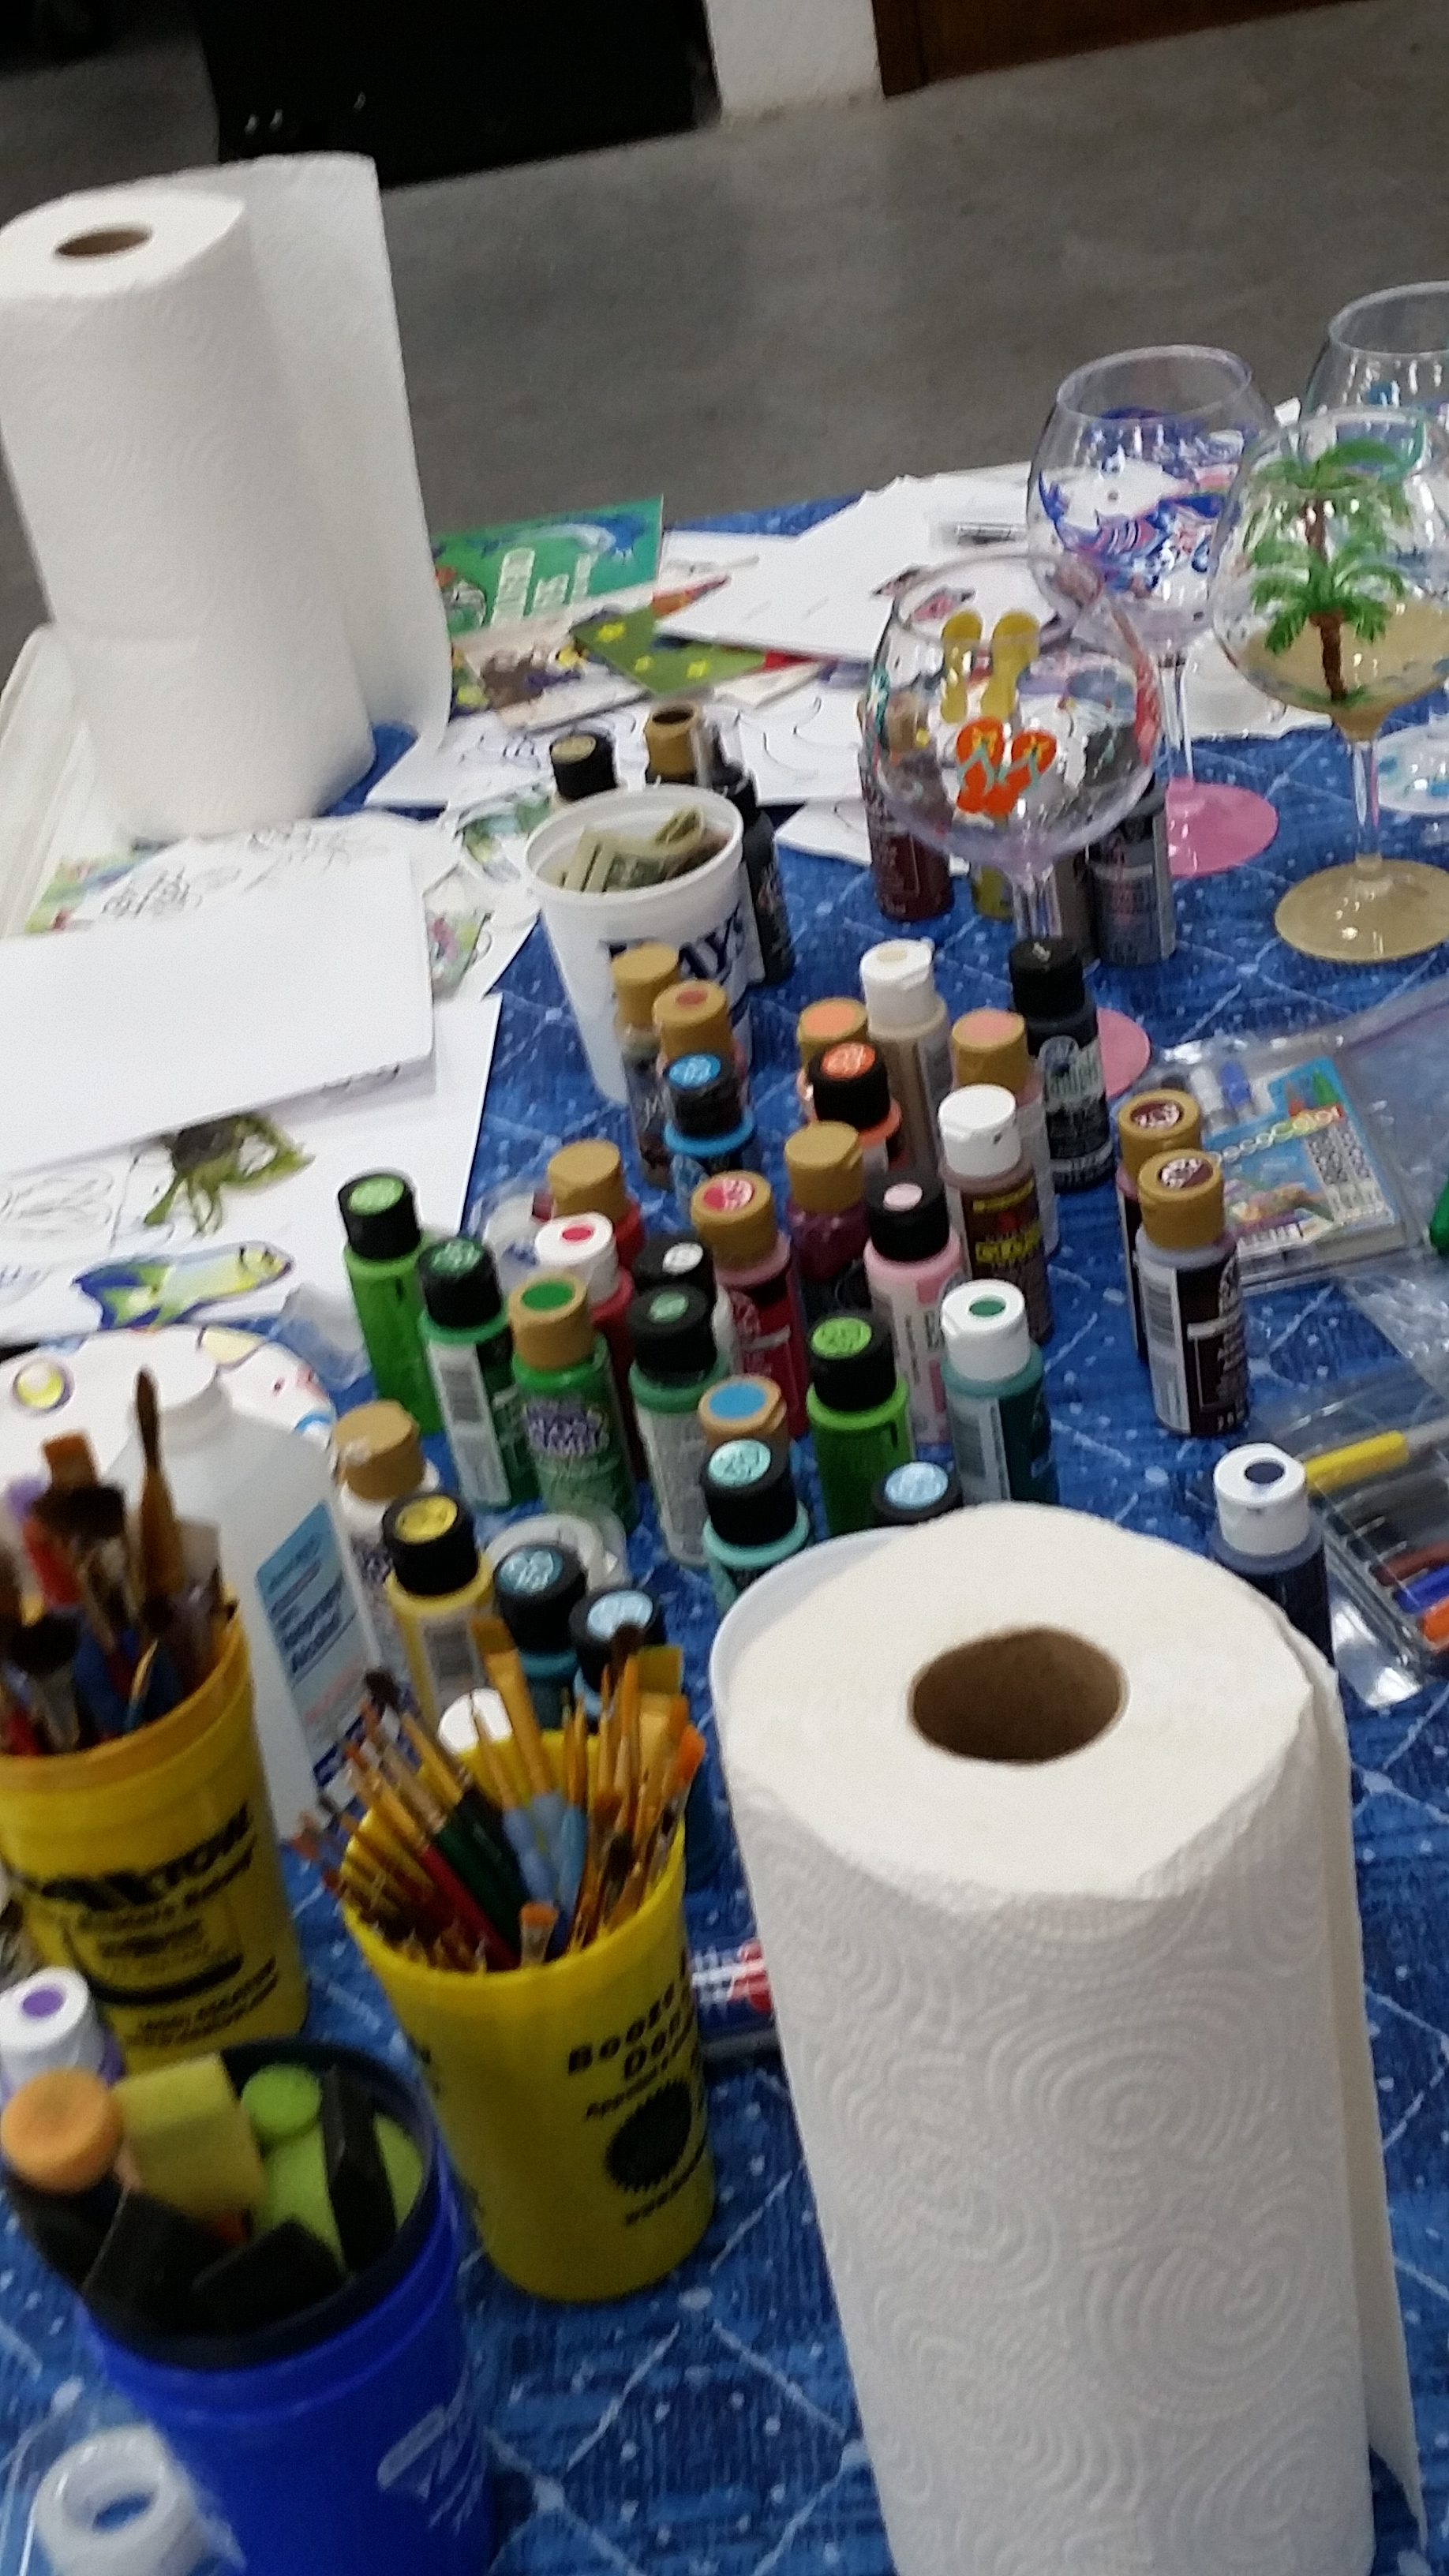 Paint, pencils, paper towels and other supplies needed for painting glasses.